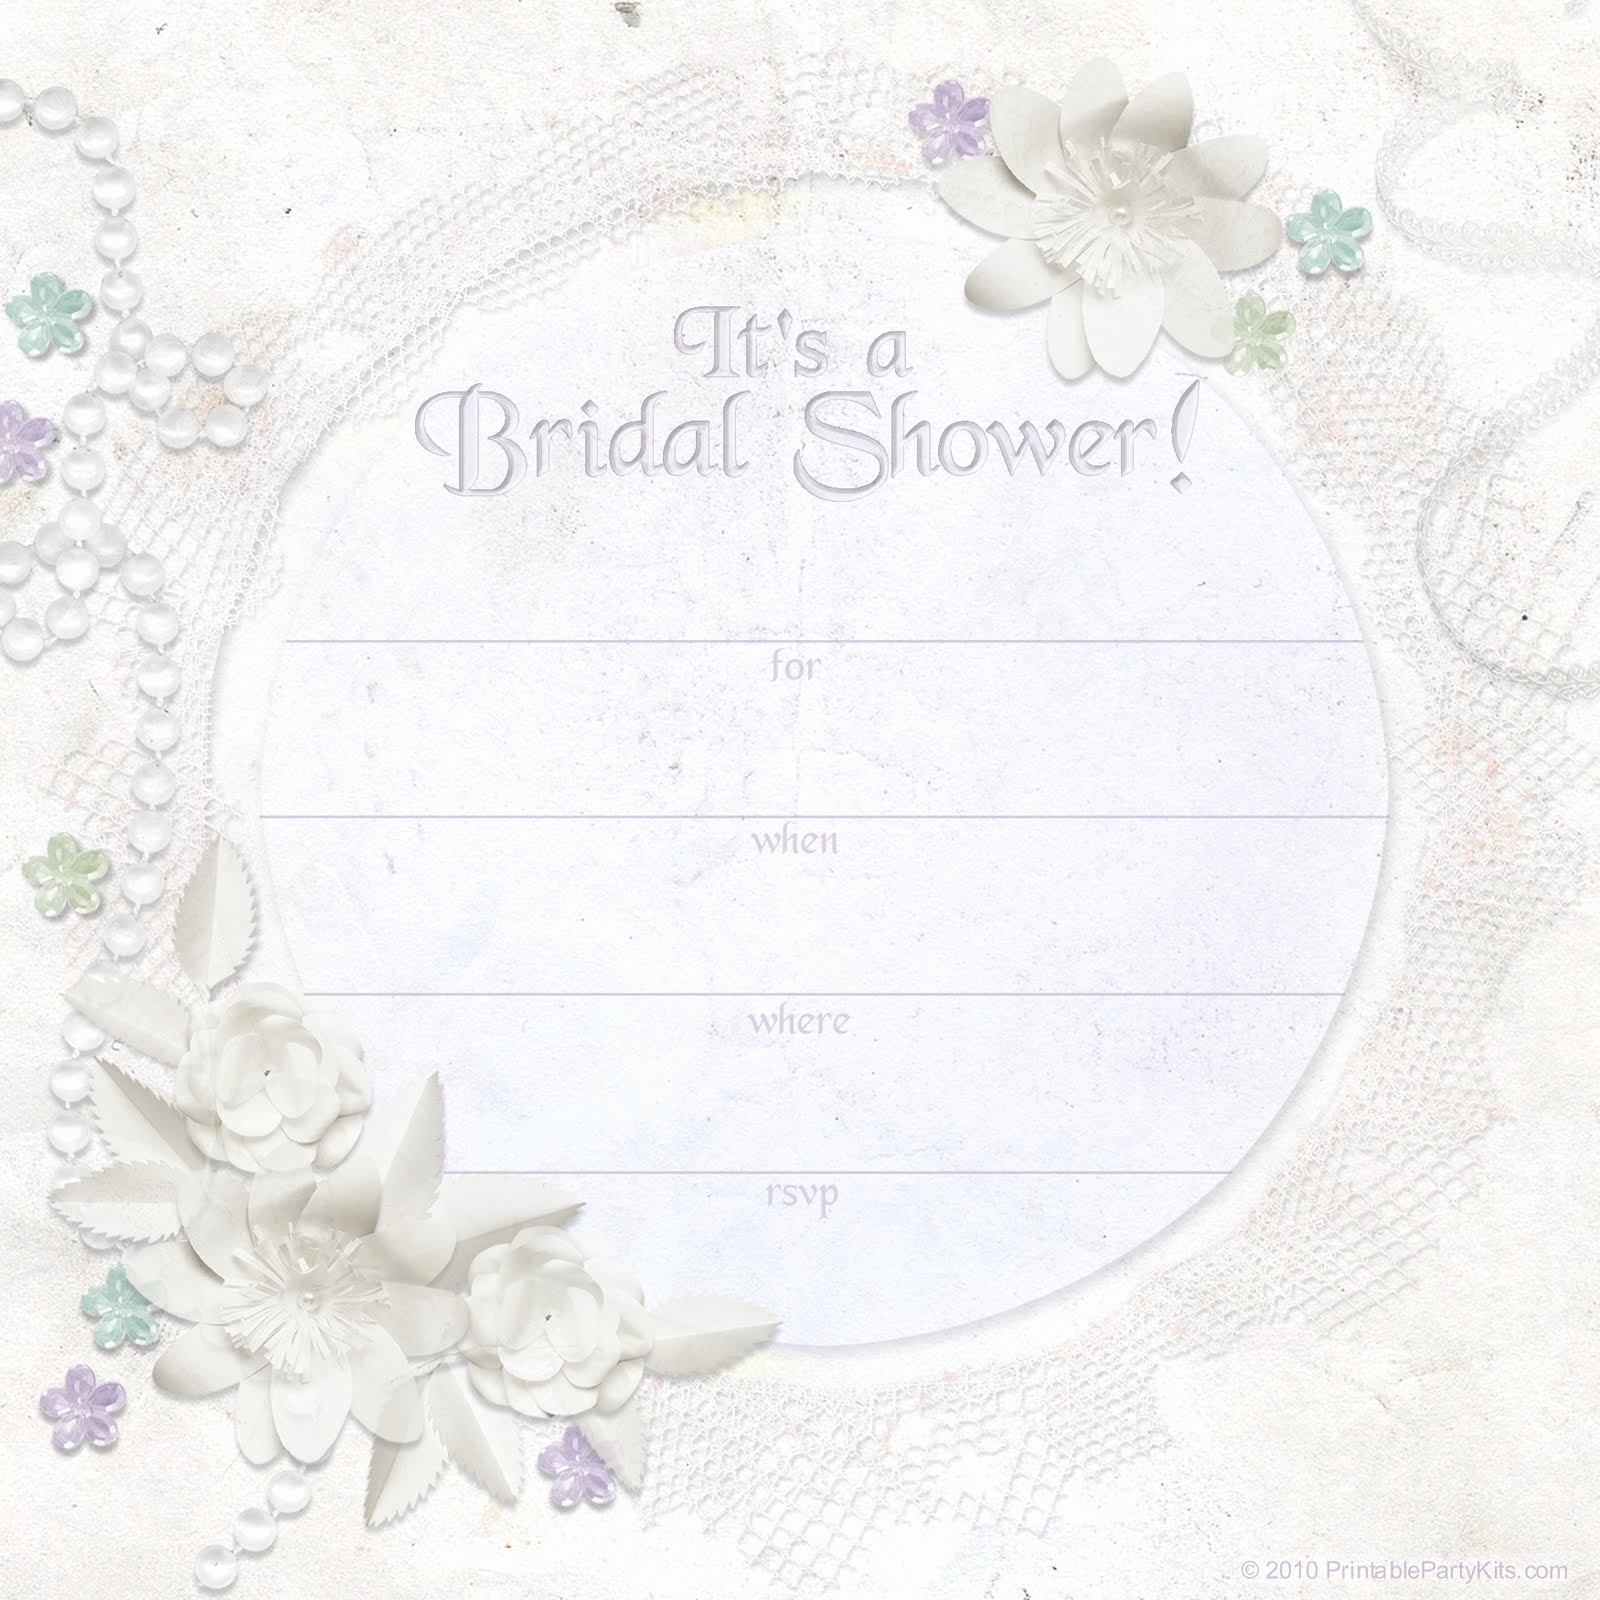 Bridal Shower Invitation Template Lovely Free Printable Bridal Shower Invitations